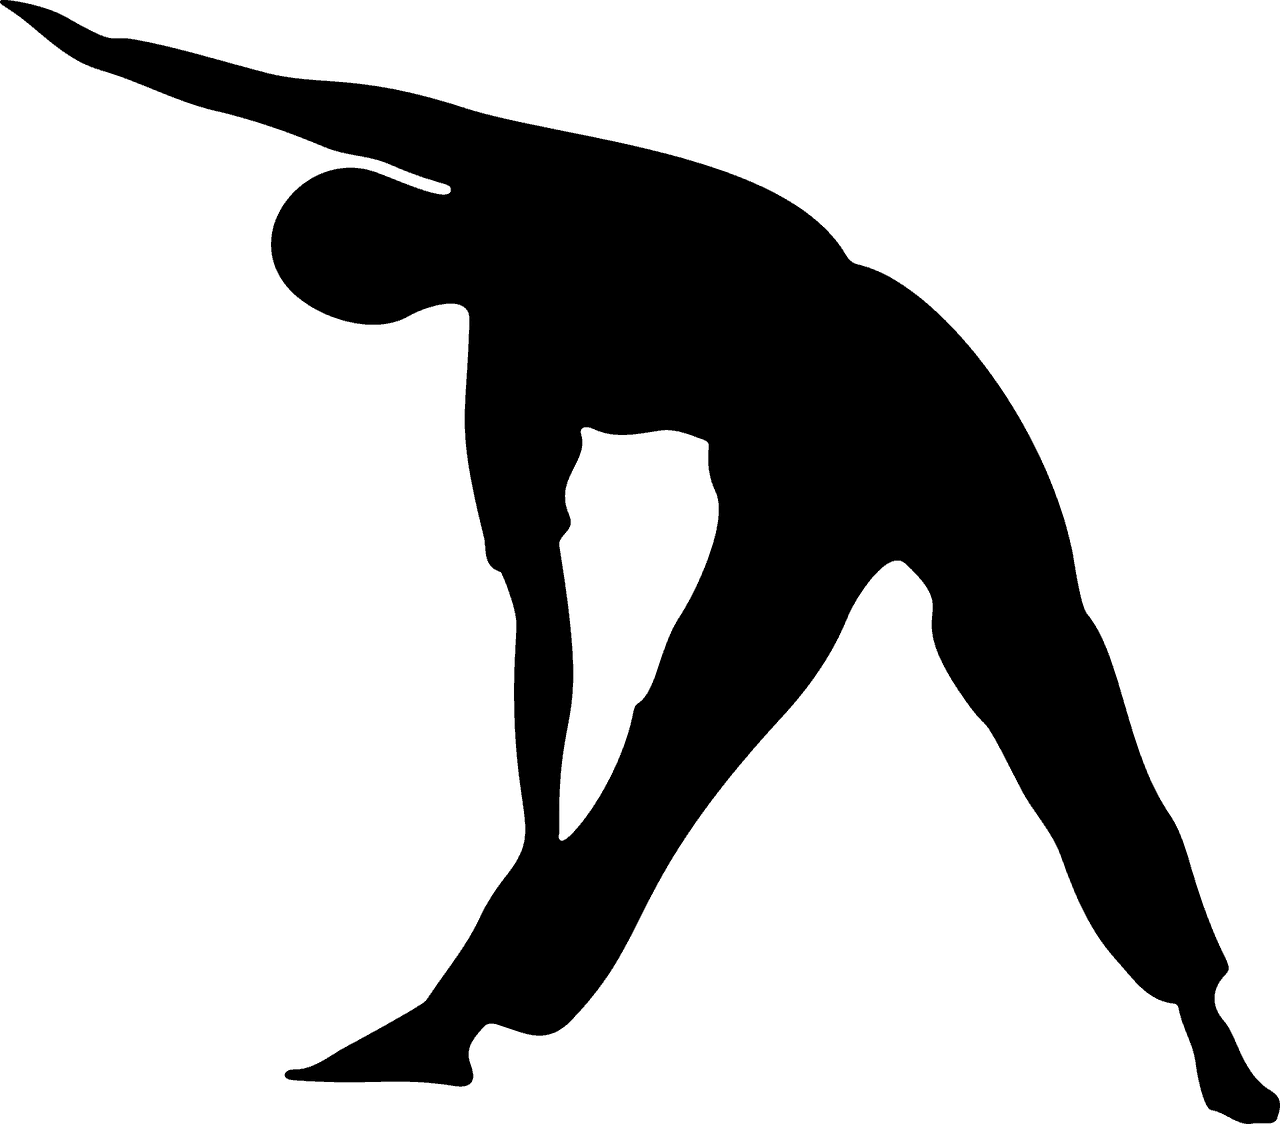 Dynamic VS Static stretching: What are they and when should you do them?